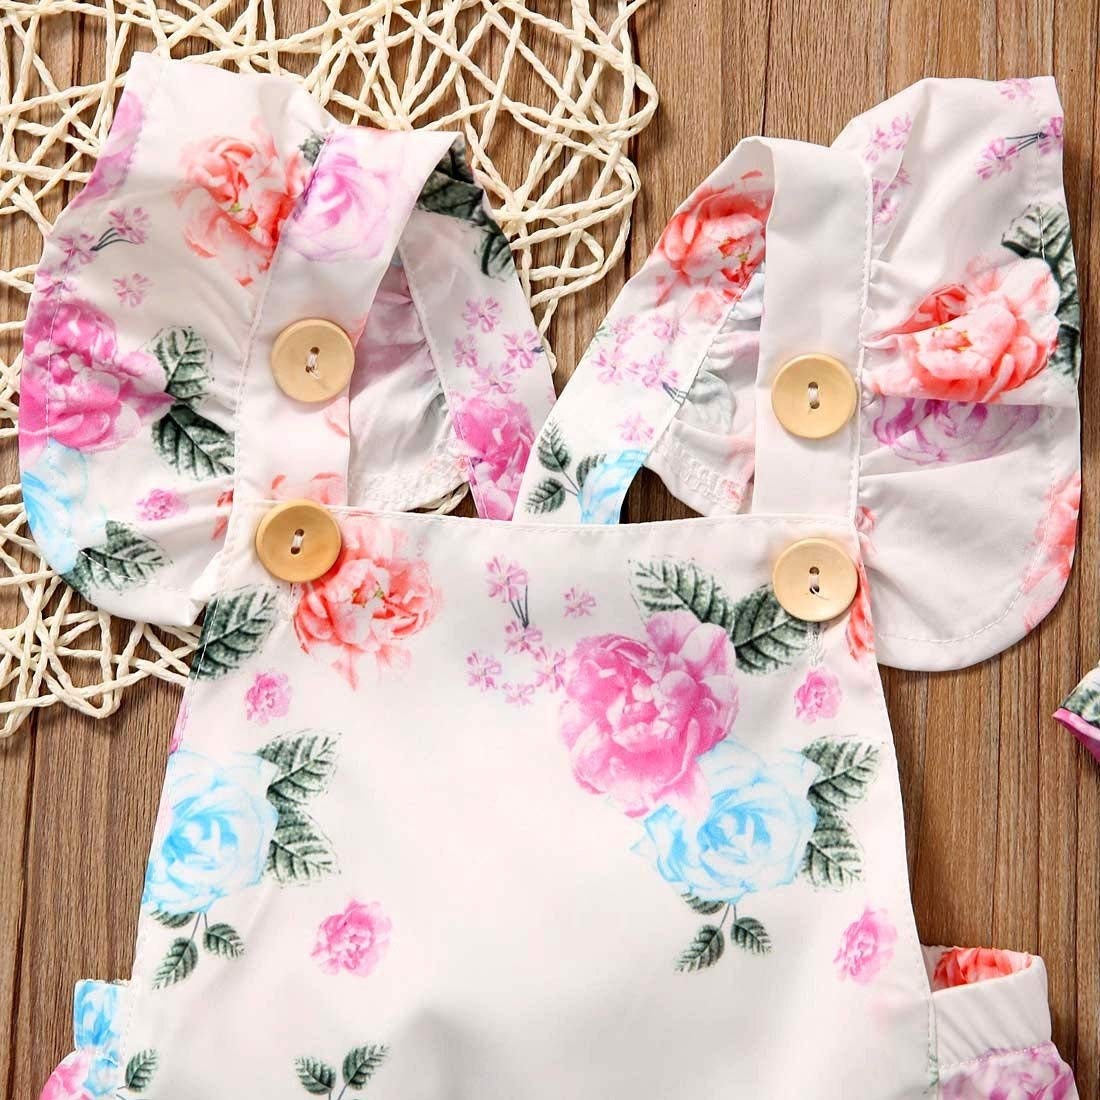 Oklady Newborn Baby Girls Clothes Outfits Floral Jumpsuit Romper Playsuit Headband Set